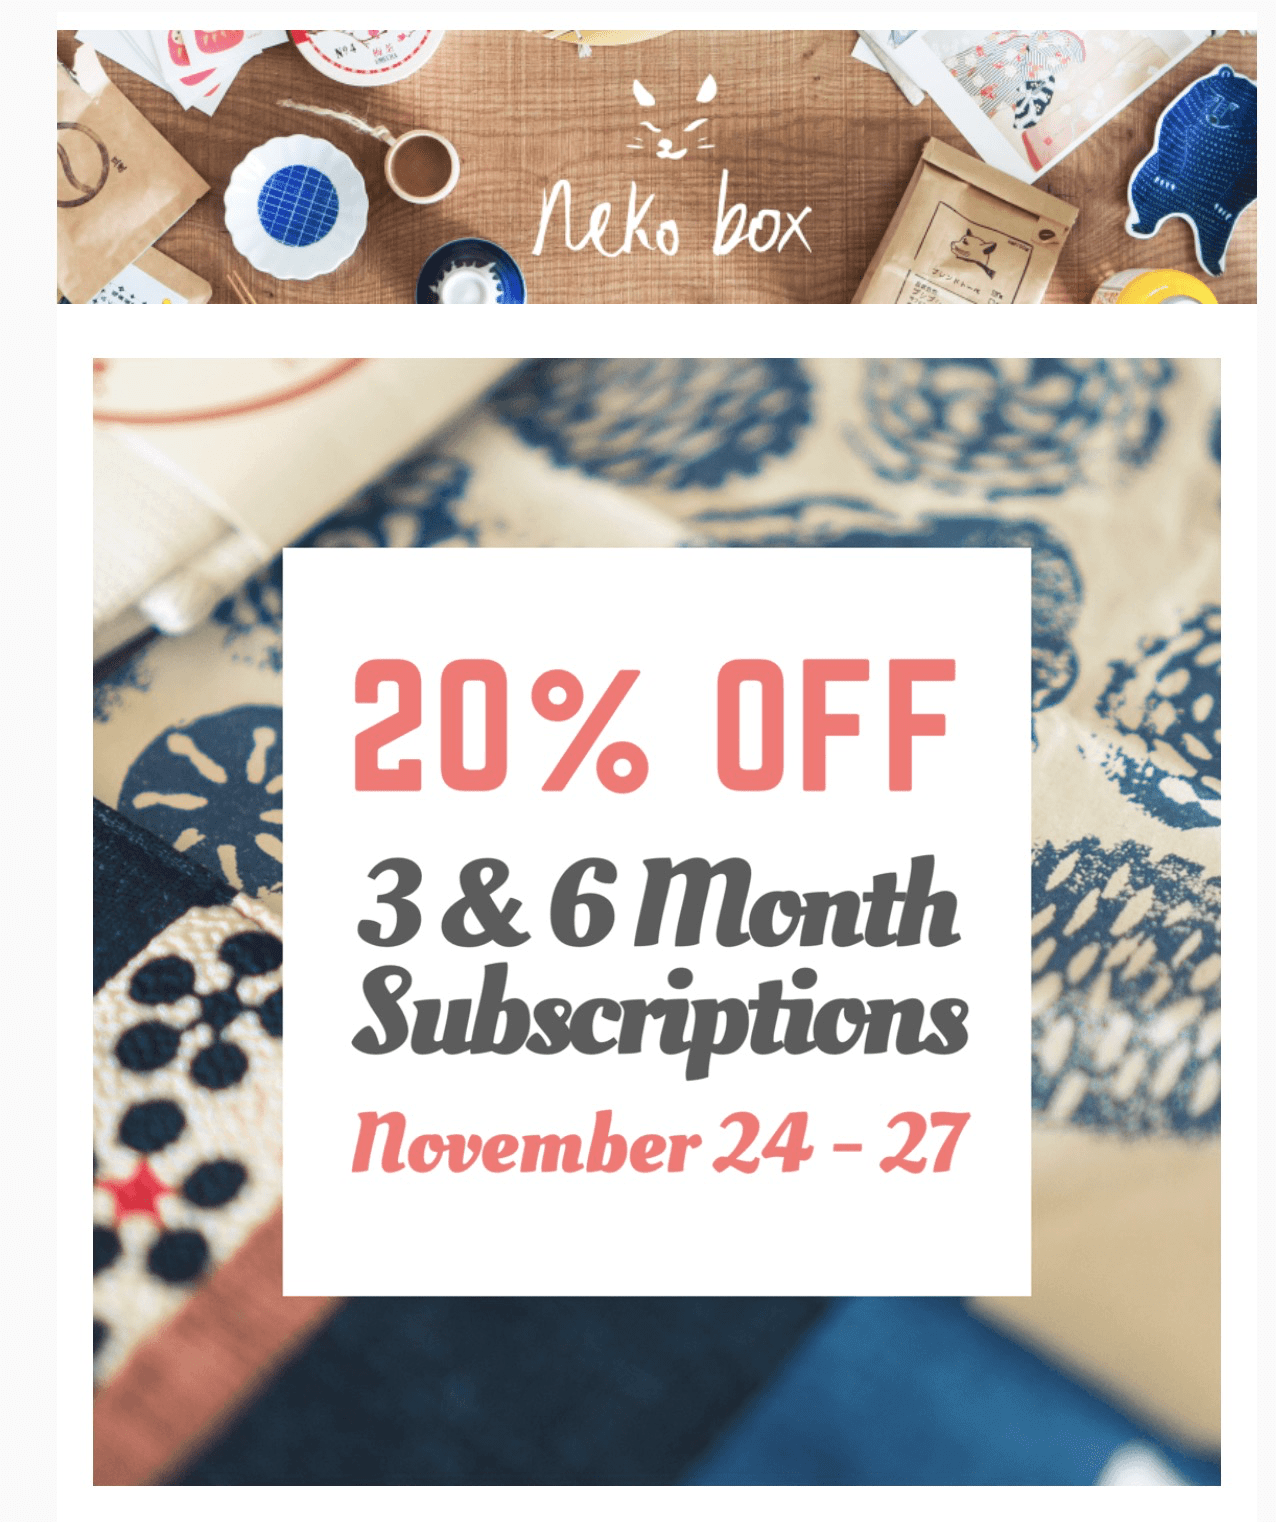 Neko Box Black Friday Coupon: 20% Off 3+ Month Subscriptions!